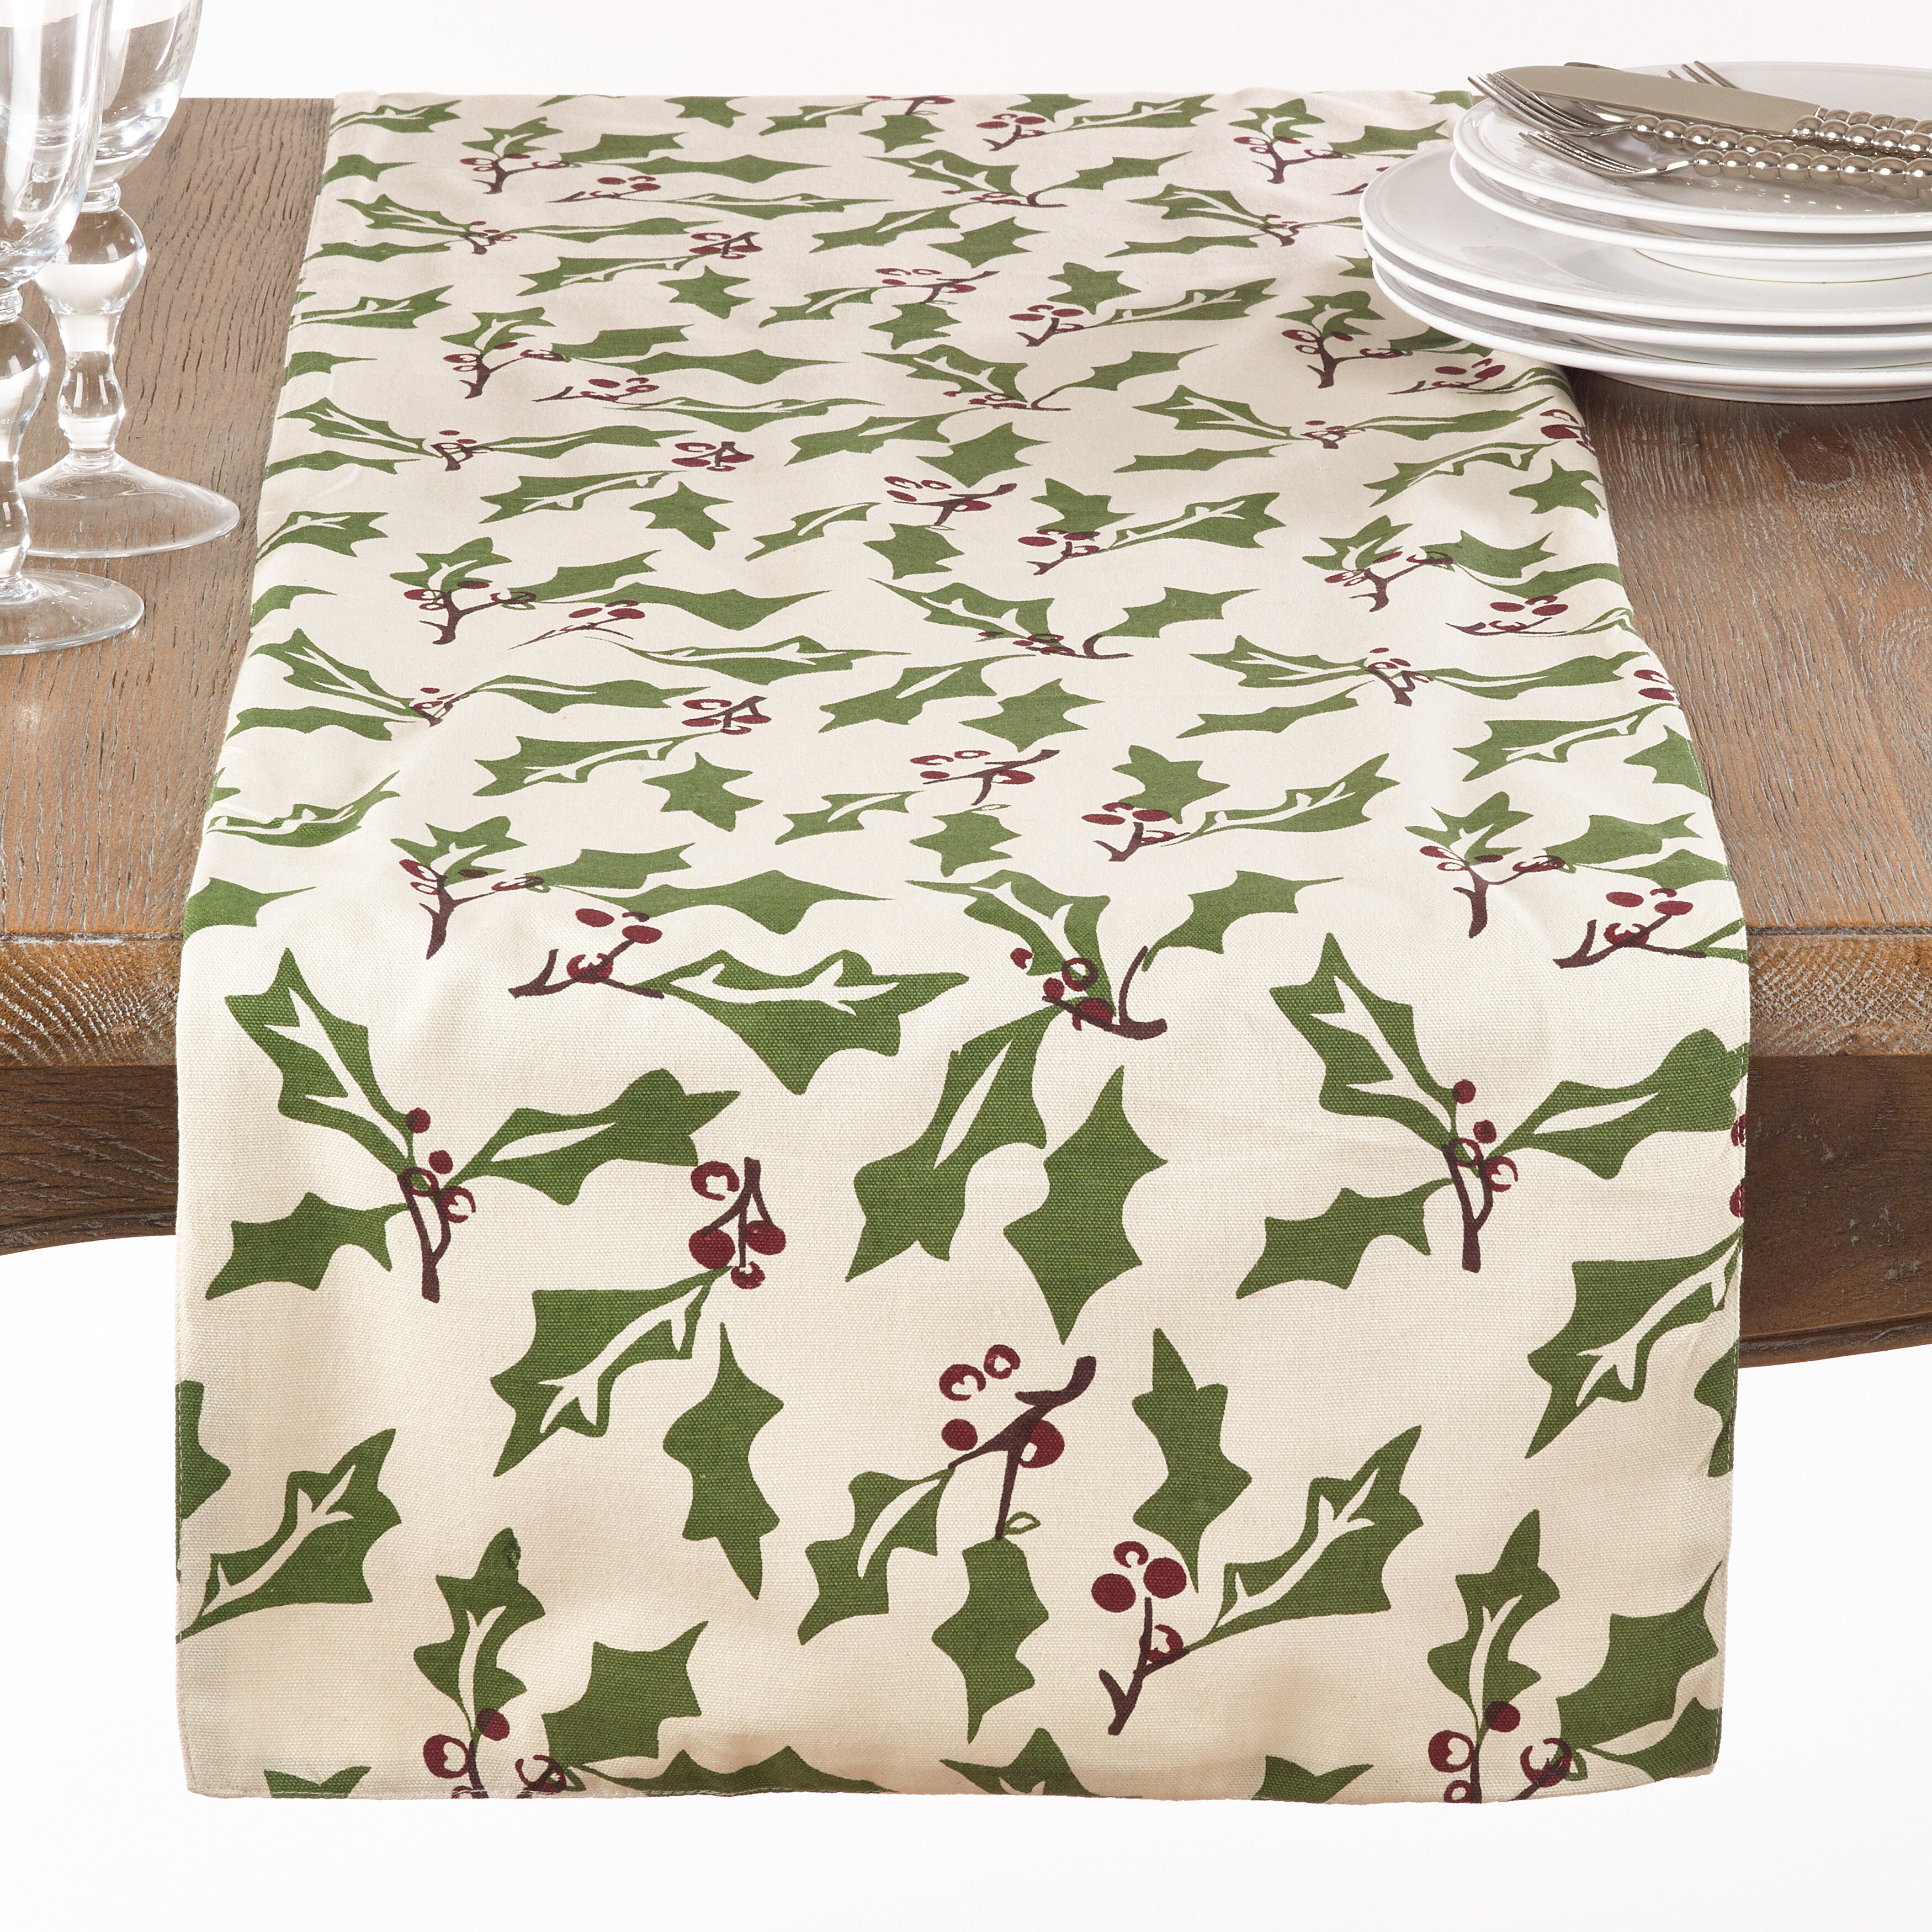 The Holiday Aisle Driggers Holly Berry Christmas Table Runner Wayfair